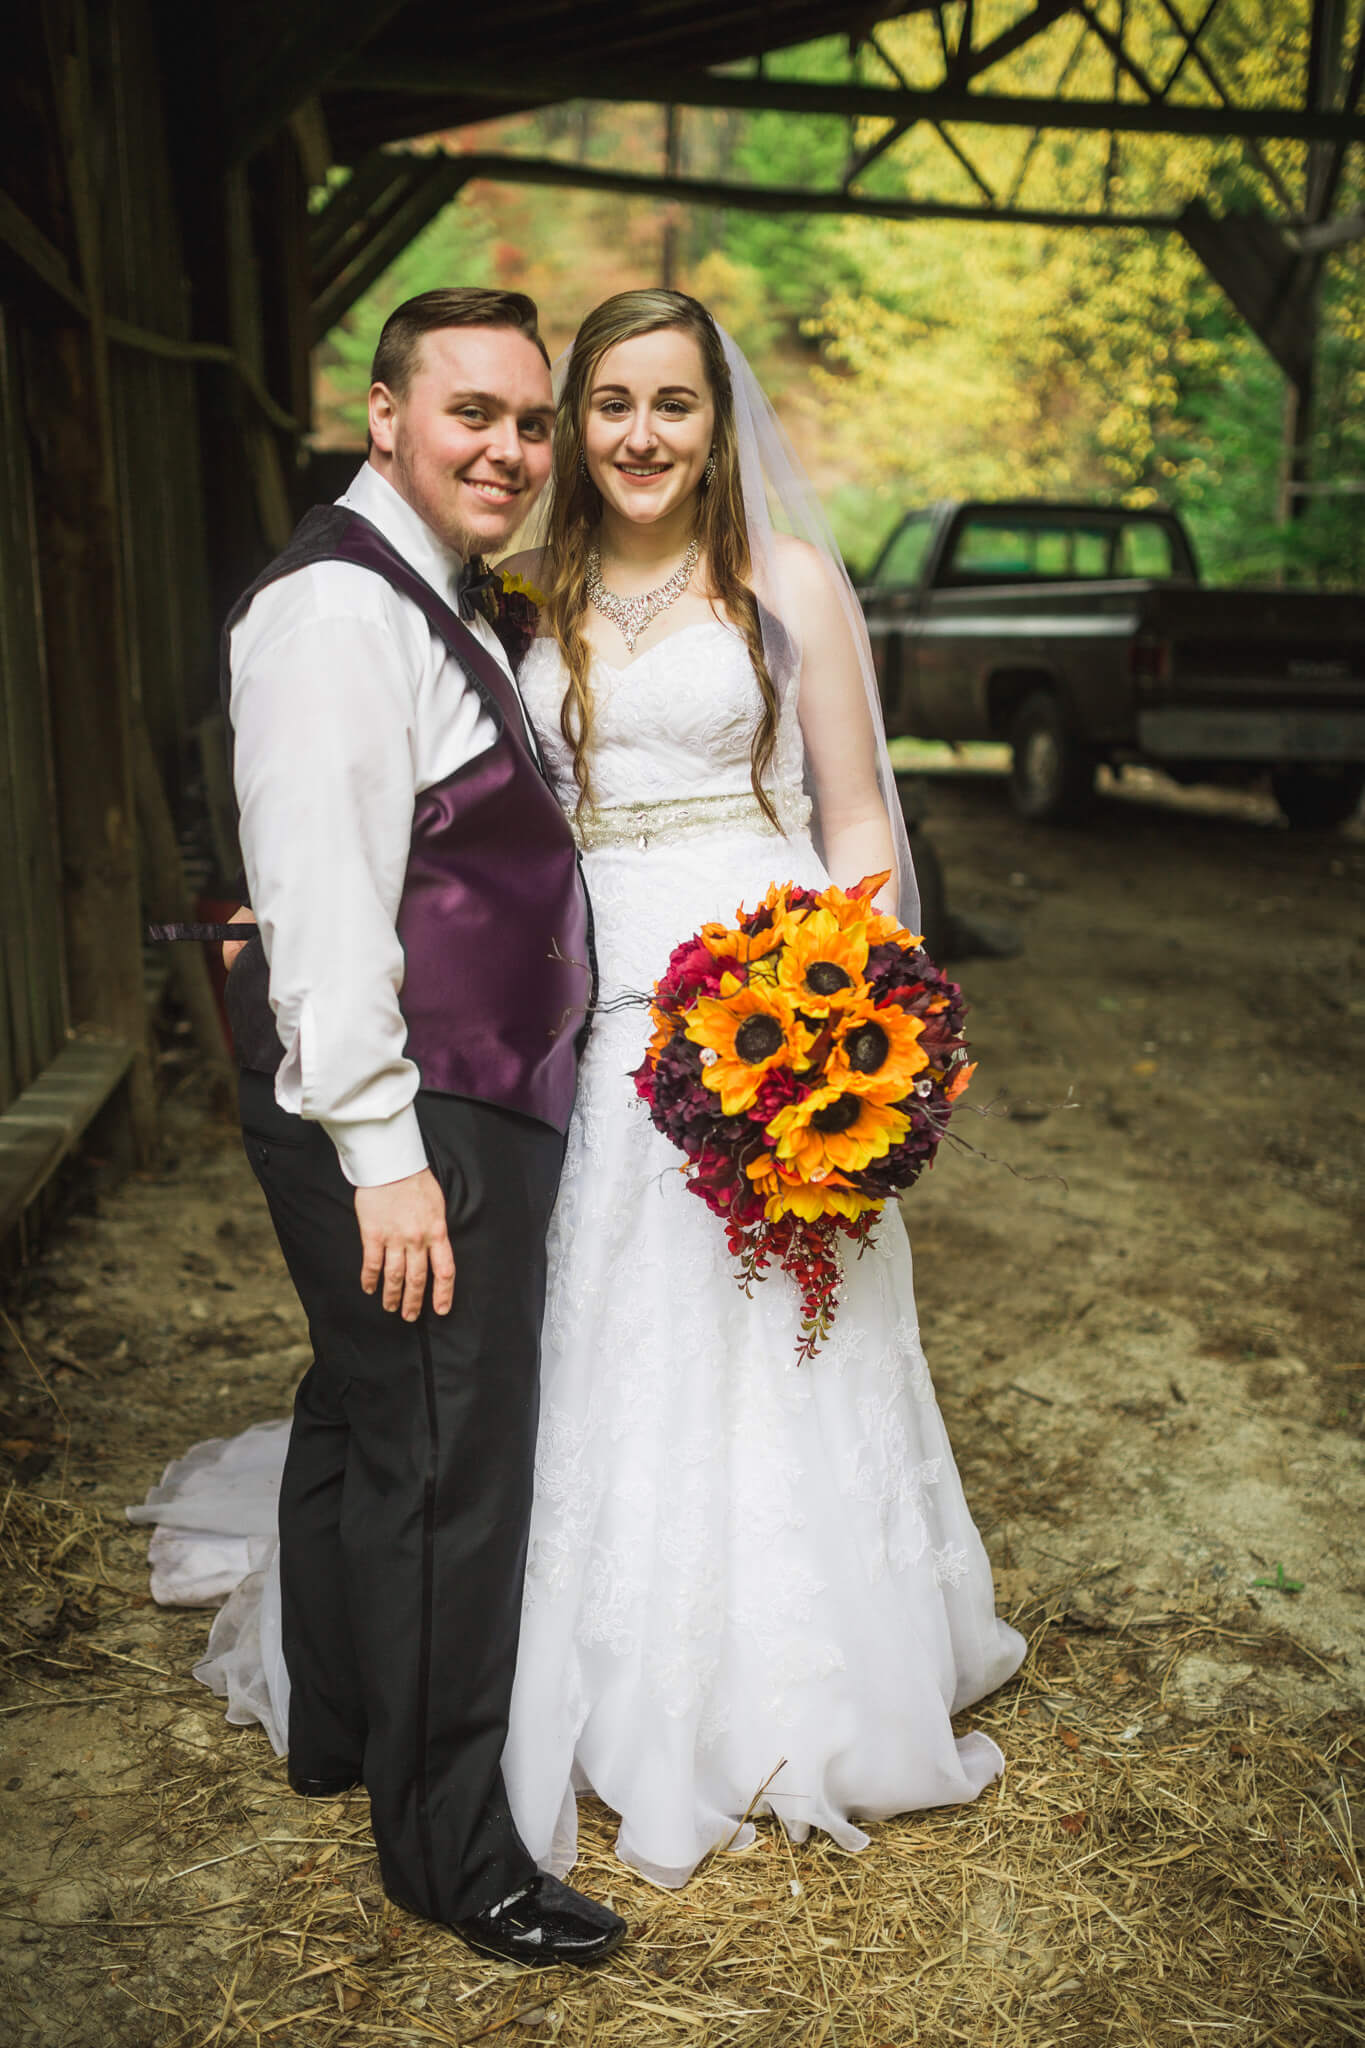 Mitcham's Barn Wedding-86.JPG